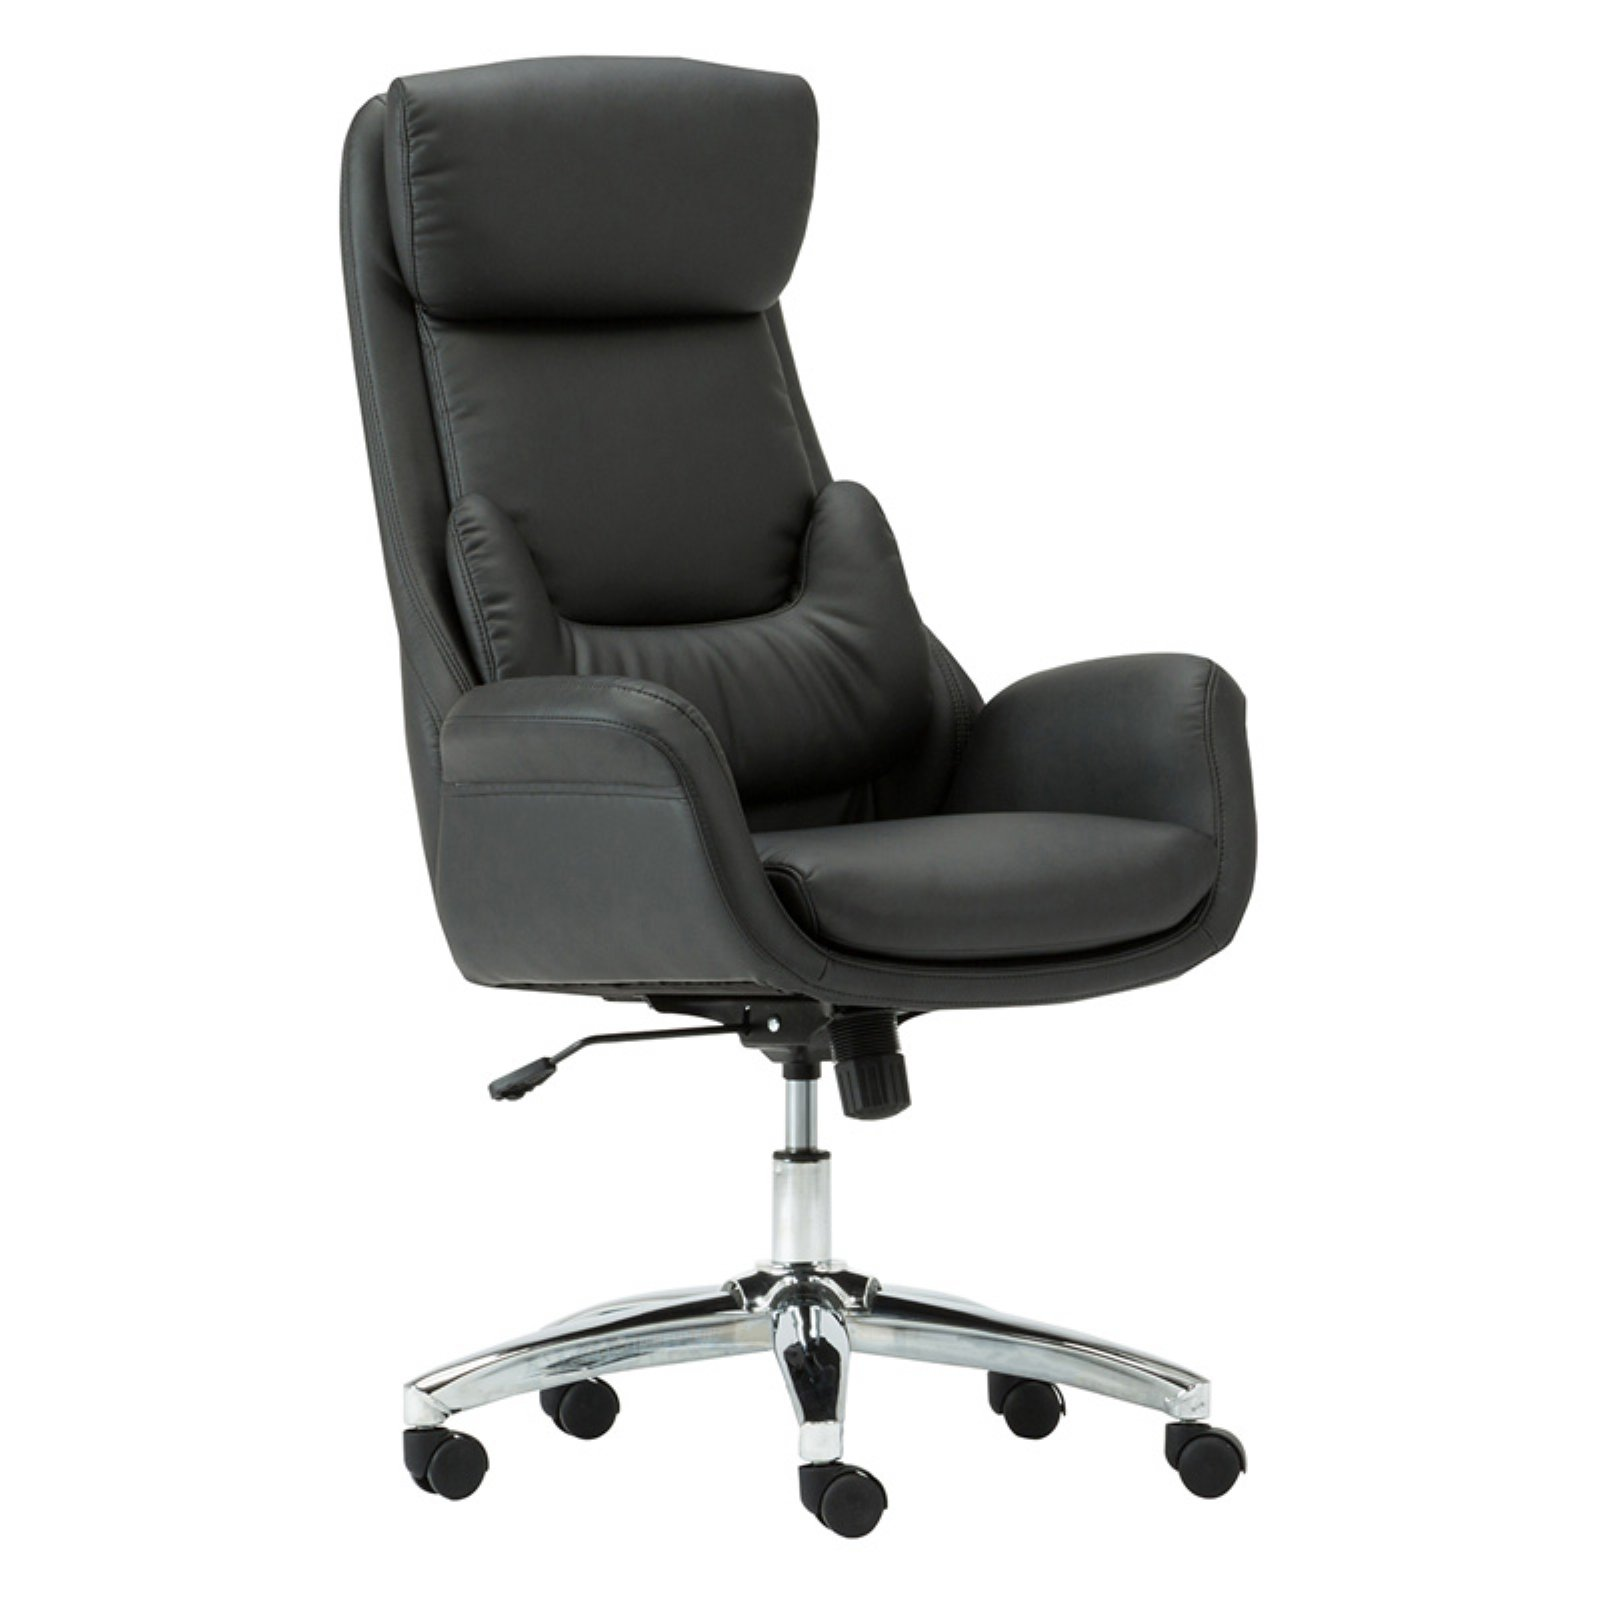 Techni Mobili Ergonomic Home Office Chair with Lumbar Support